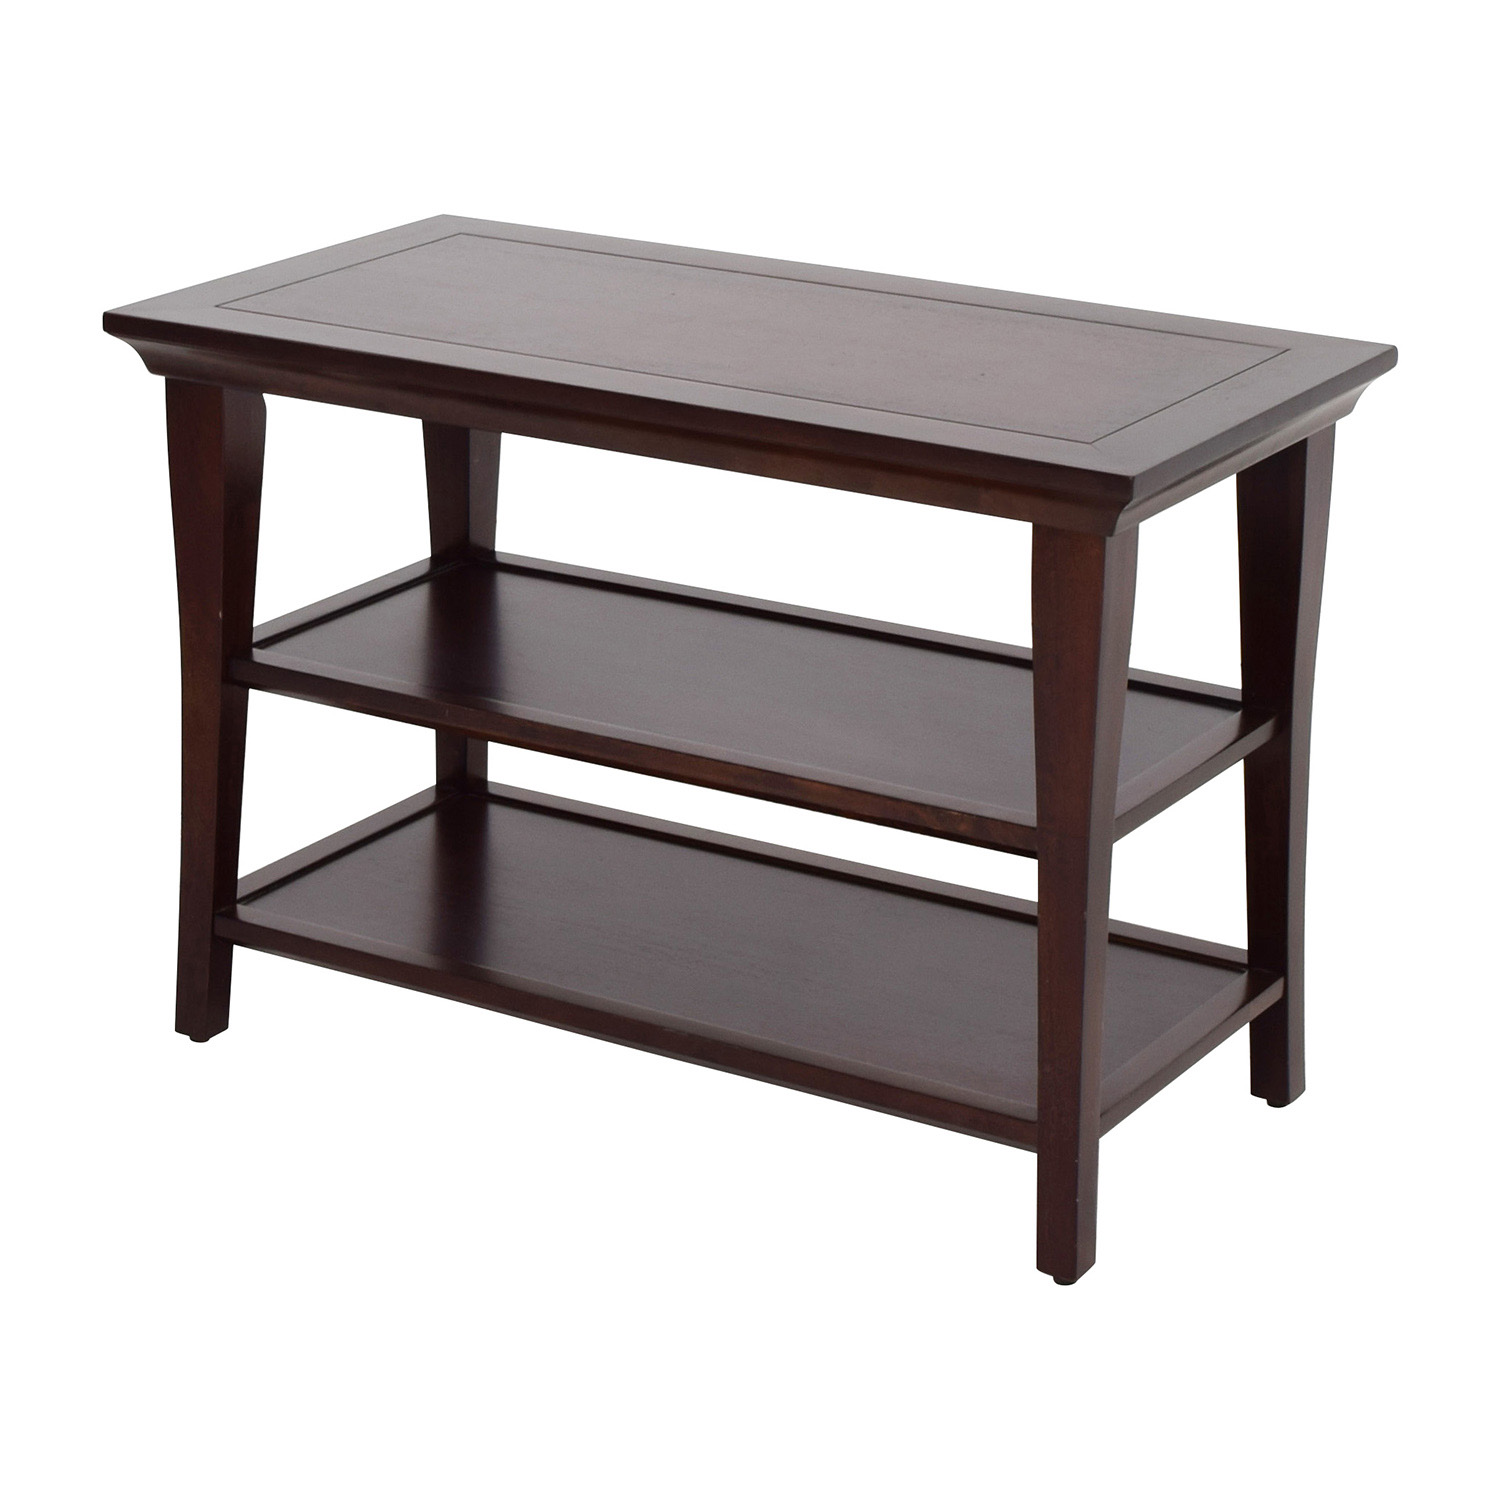 Pottery Barn Wood Table: Pottery Barn Pottery Barn Wood Table With